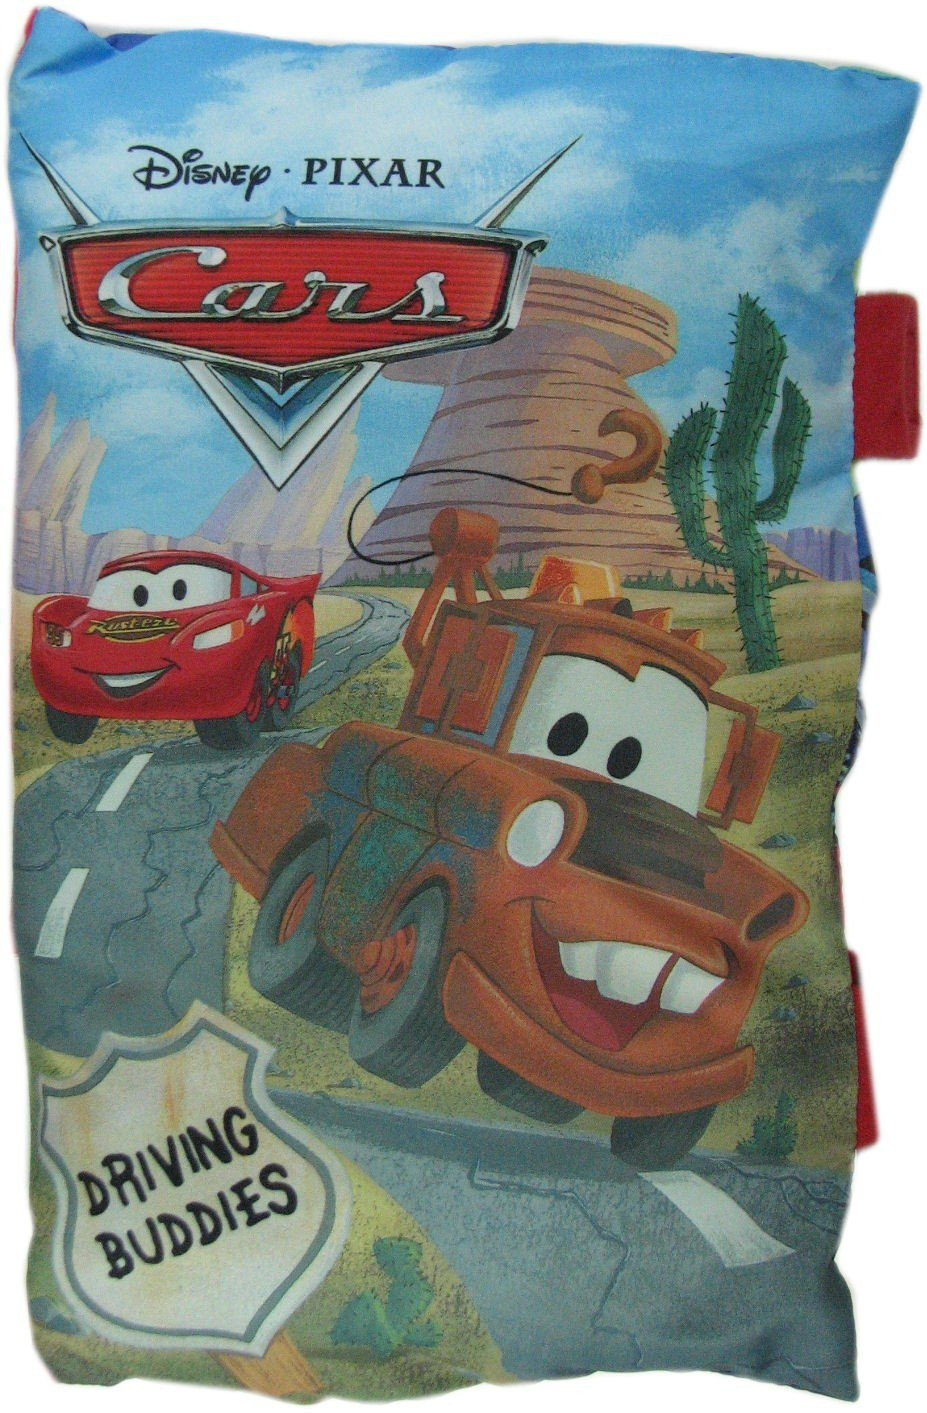 Disney Pixar Cars Tales from the Track: New Kid In Town Storybook Pillow